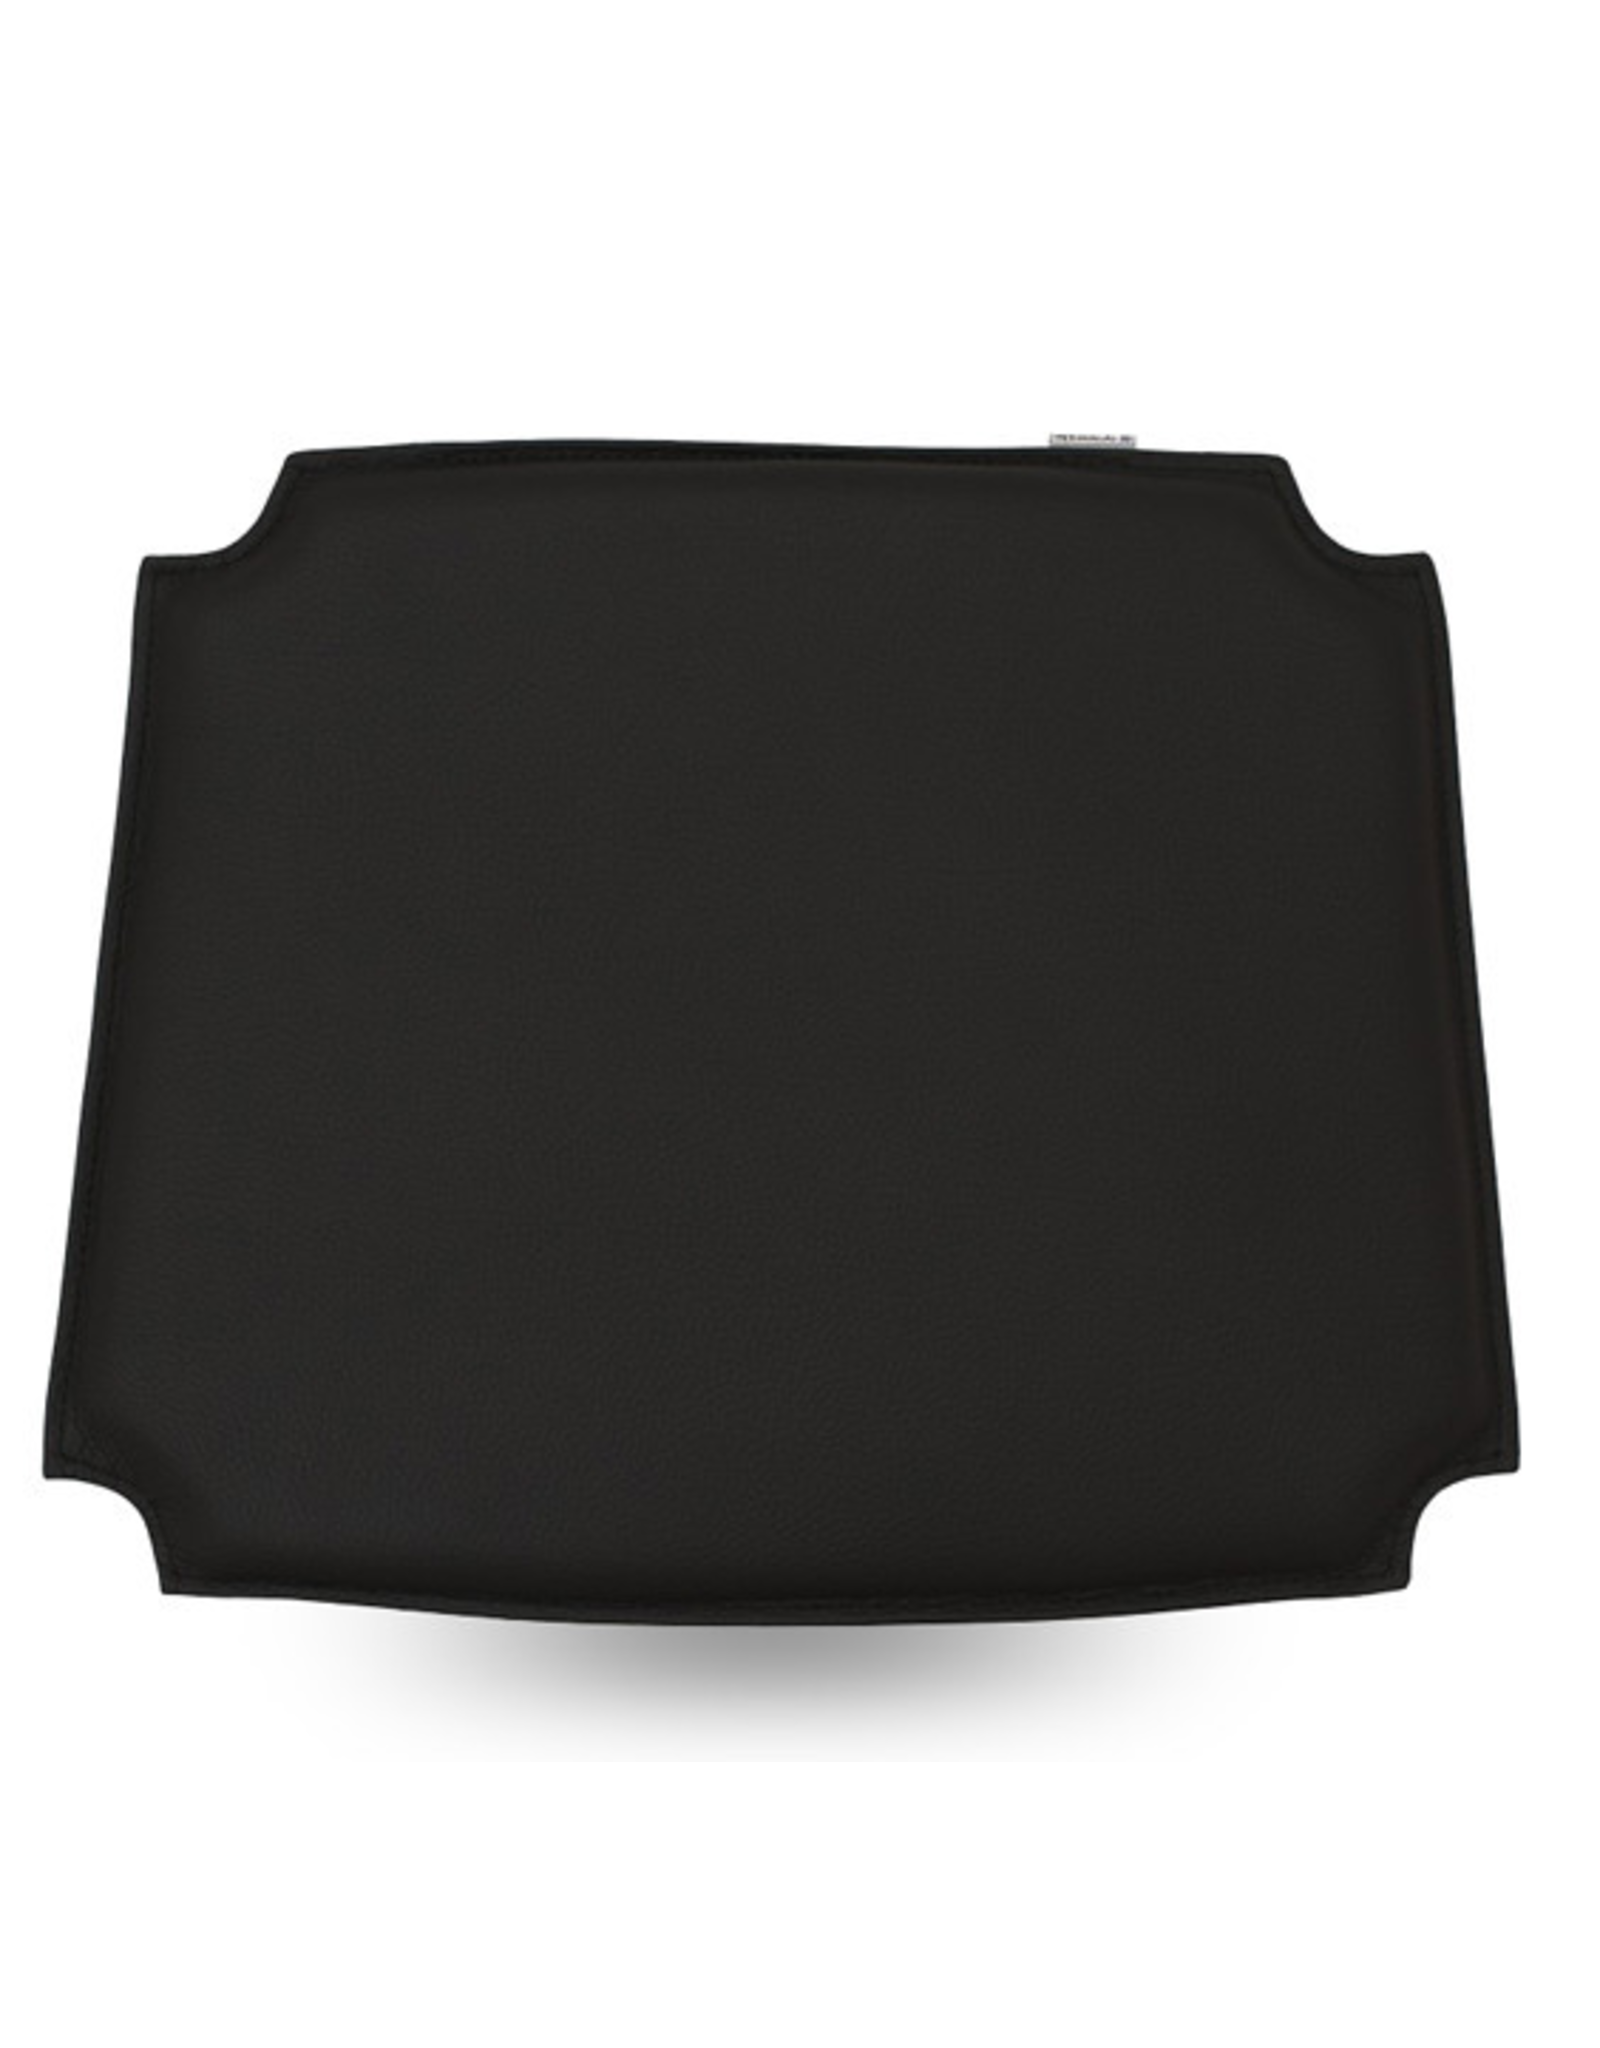 TURNABLE LEATHER CUSHION FOR CH24 WISHBONE CHAIR